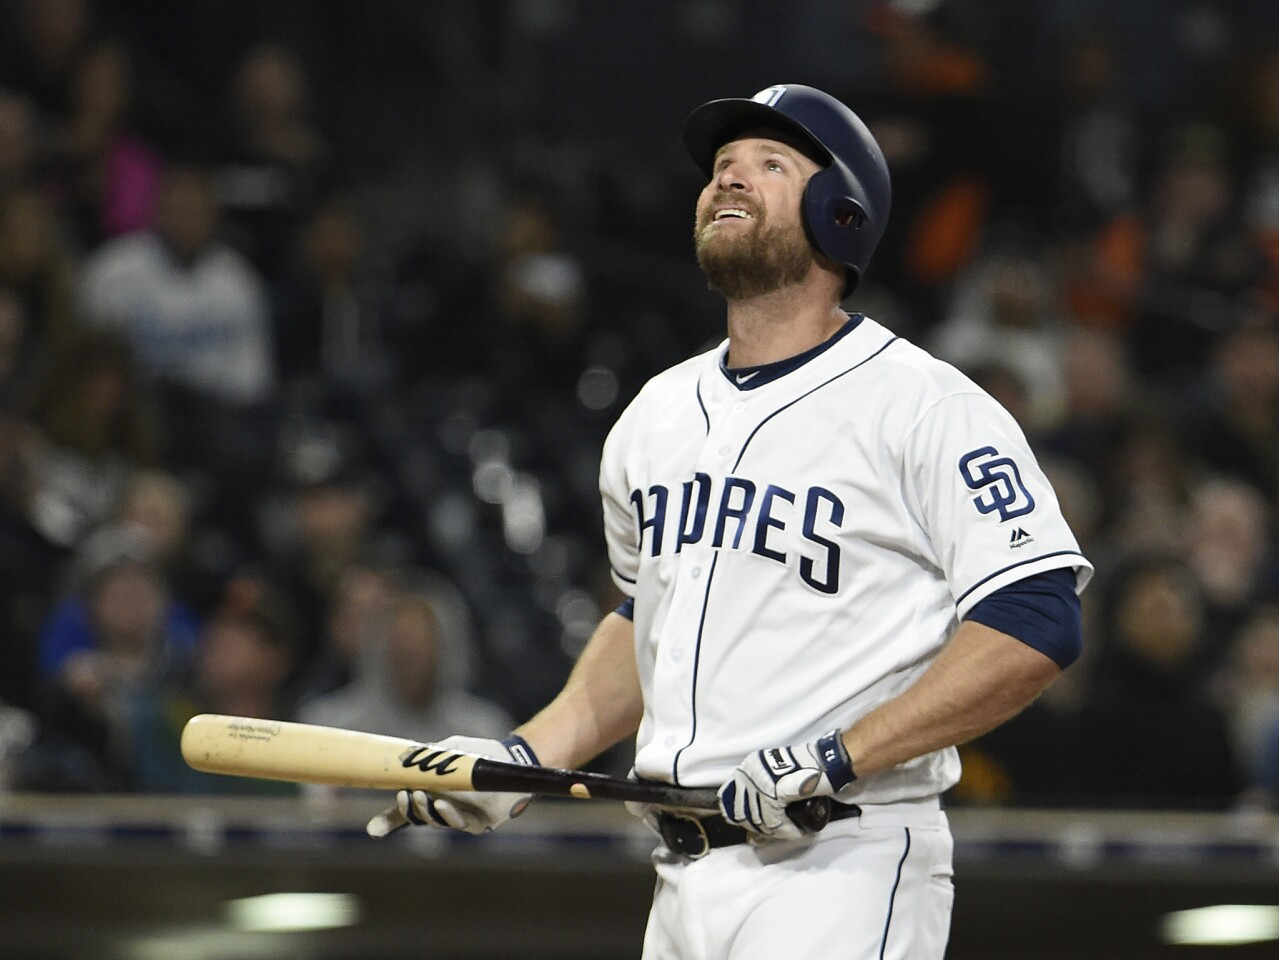 SAN DIEGO, CA - APRIL 4: Chase Headley #12 of the San Diego Padres looks up after taking a strike during the eighth inning of a baseball game against the Colorado Rockies at PETCO Park on April 4, 2018 in San Diego, California. (Photo by Denis Poroy/Getty Images) ** OUTS - ELSENT, FPG, CM - OUTS * NM, PH, VA if sourced by CT, LA or MoD **